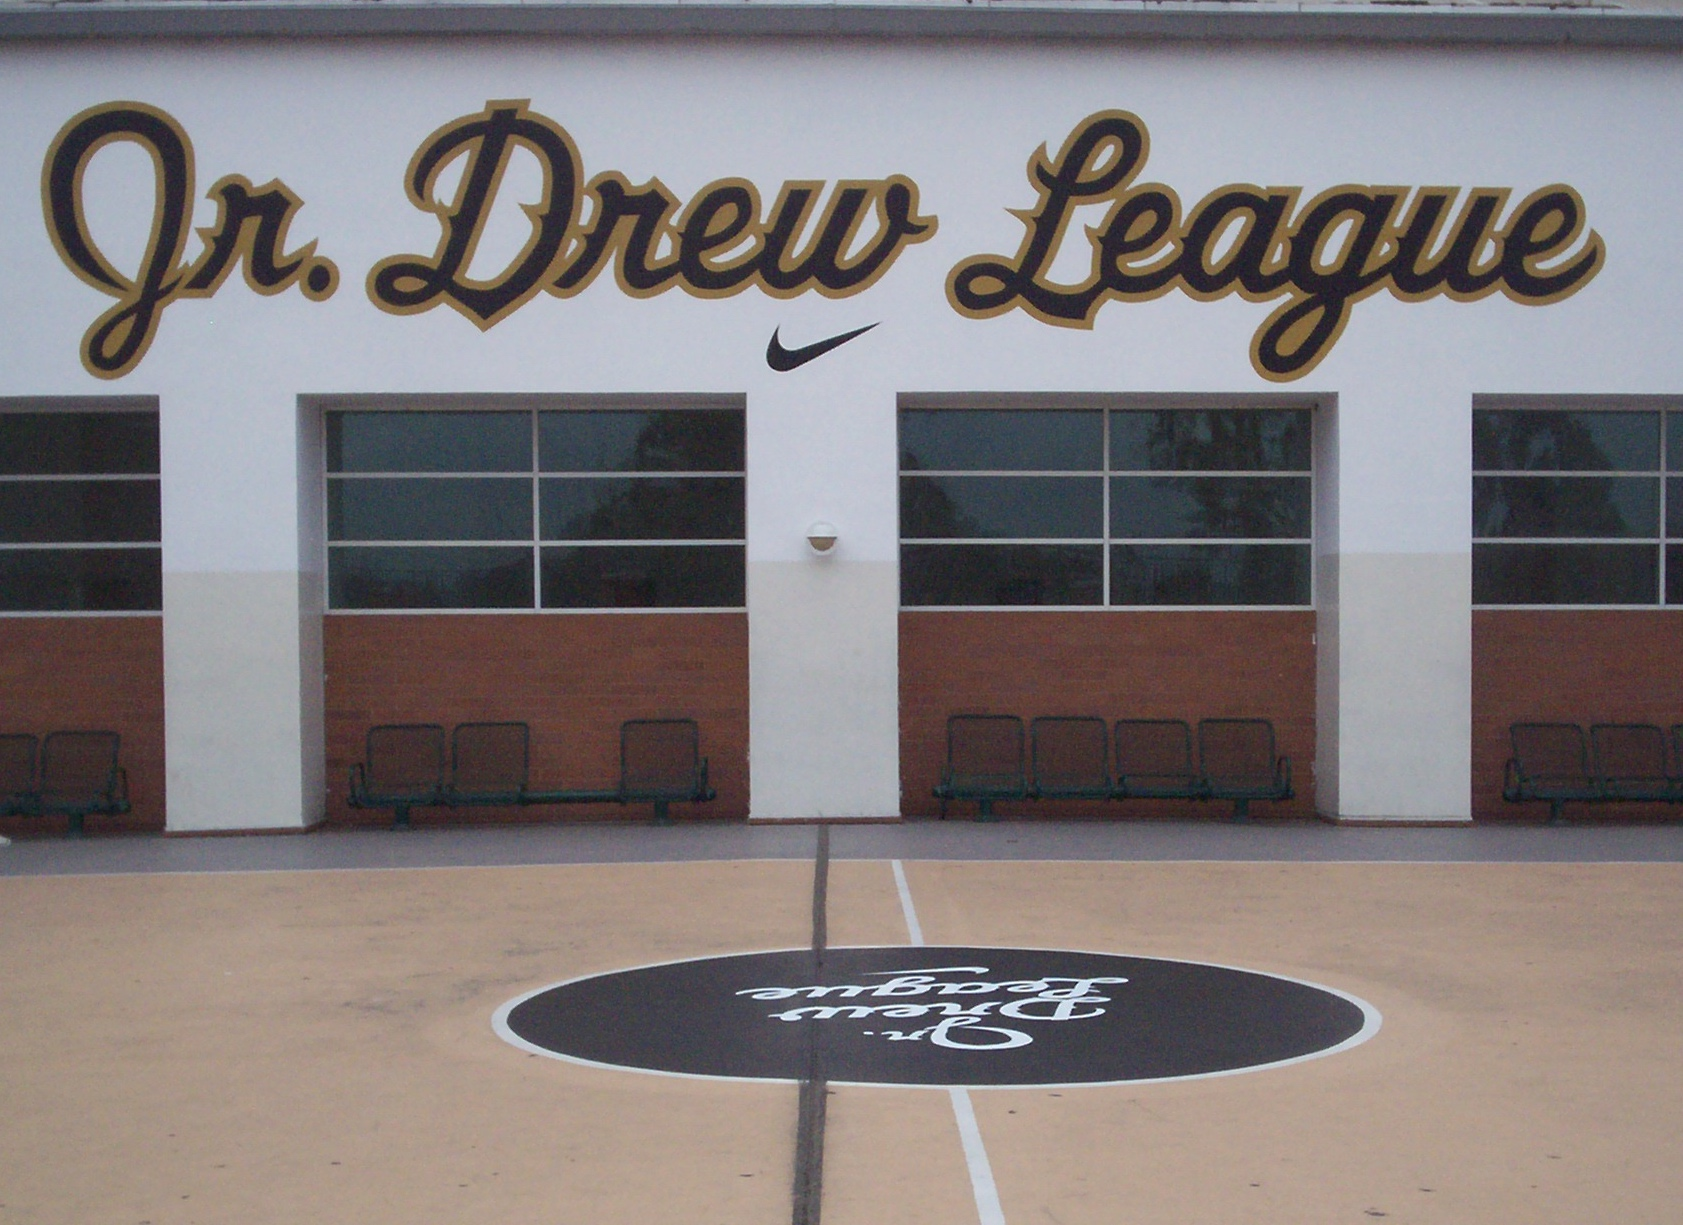 Mural - Jr. Drew League (2015) #1